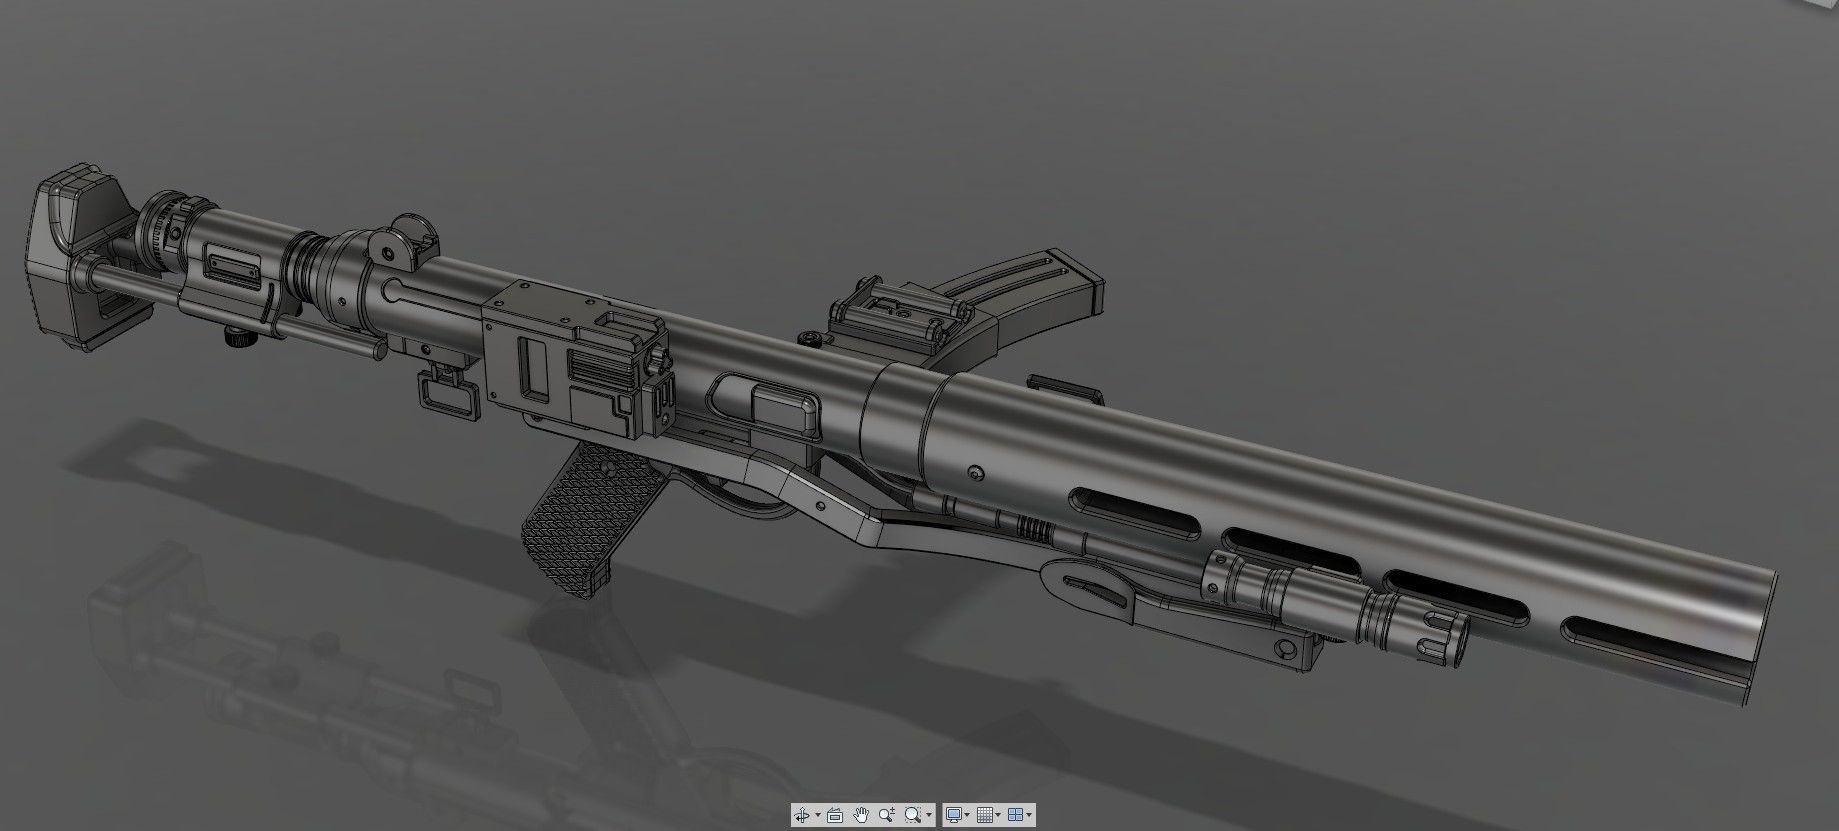 5.jpg Download STL file The E-11D blaster rifle • 3D printing template, 3dpicasso